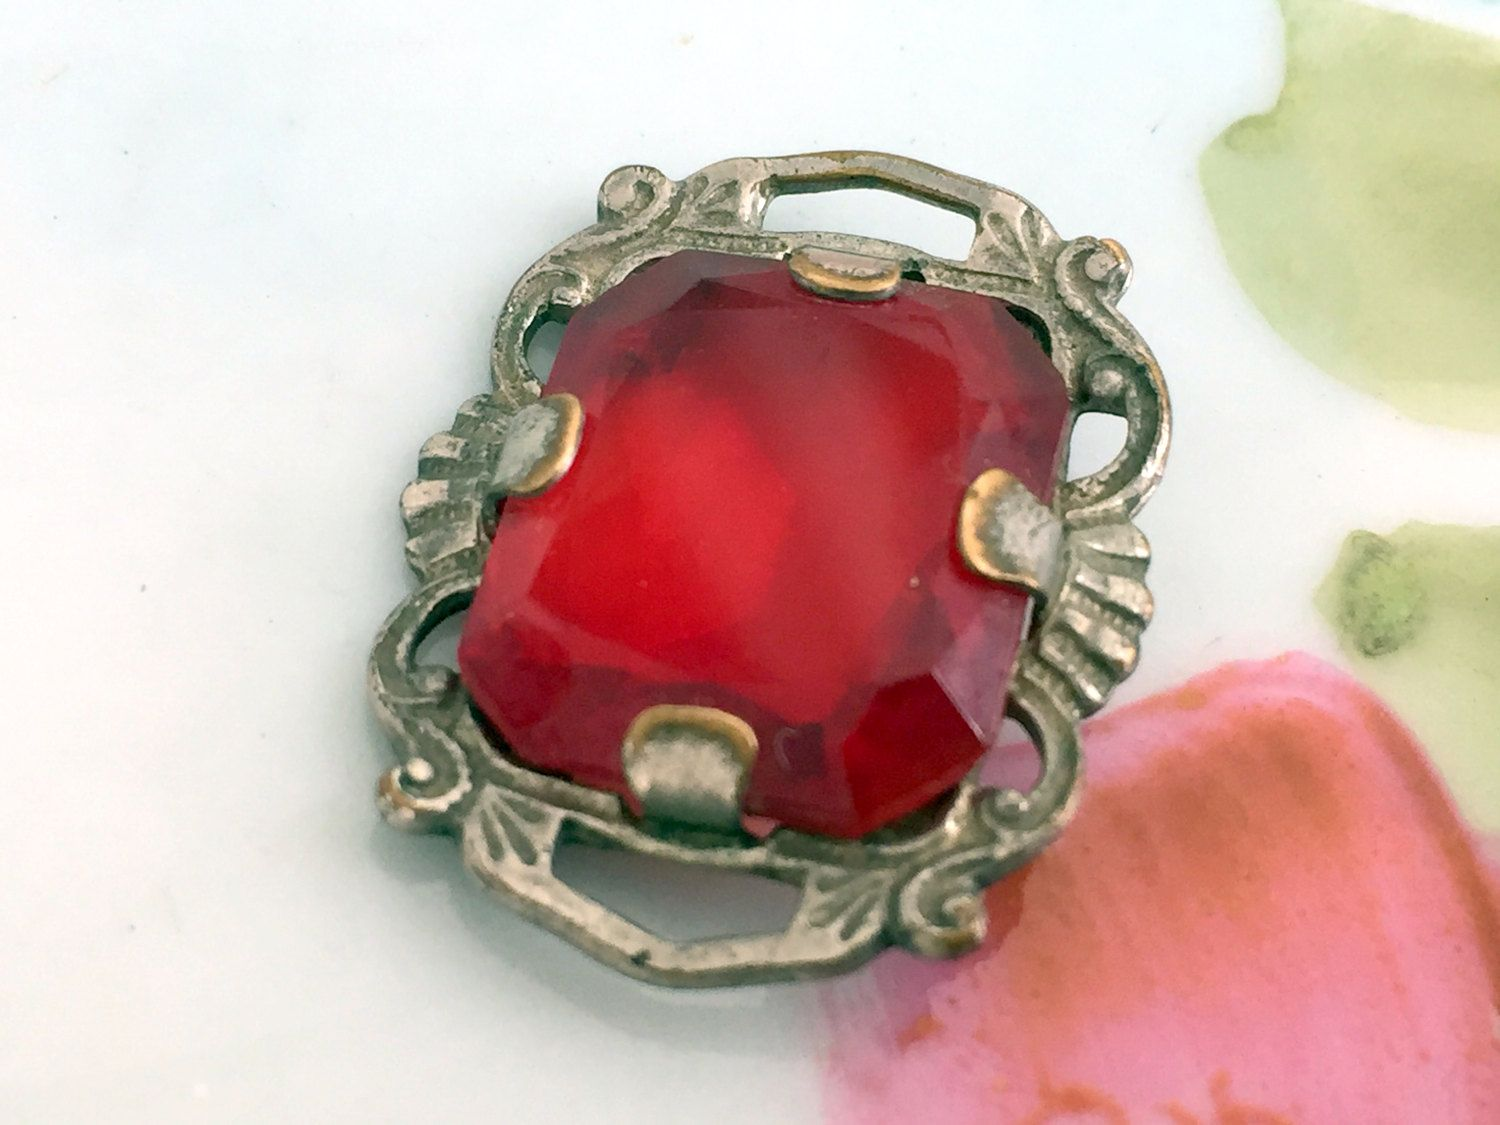 Antique red czech glass pendant part jewelry supply finding glass antique red czech glass pendant part jewelry supply finding aloadofball